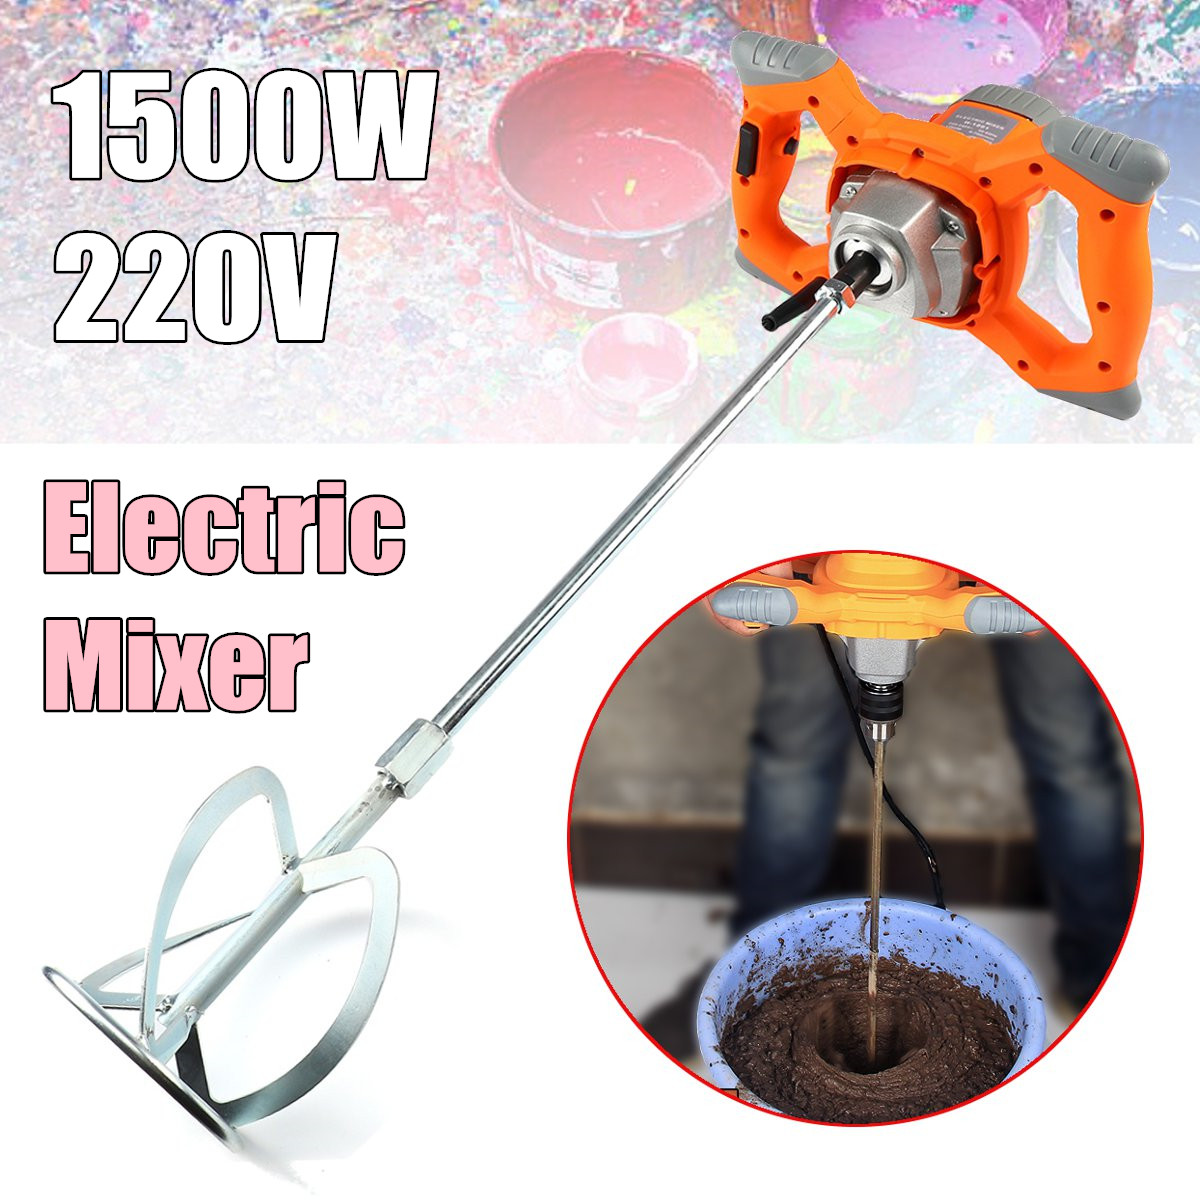 220V Industrial grade electric cement paint putty powder coating mixer 6 speed adjustable 1500W 700RPM цена